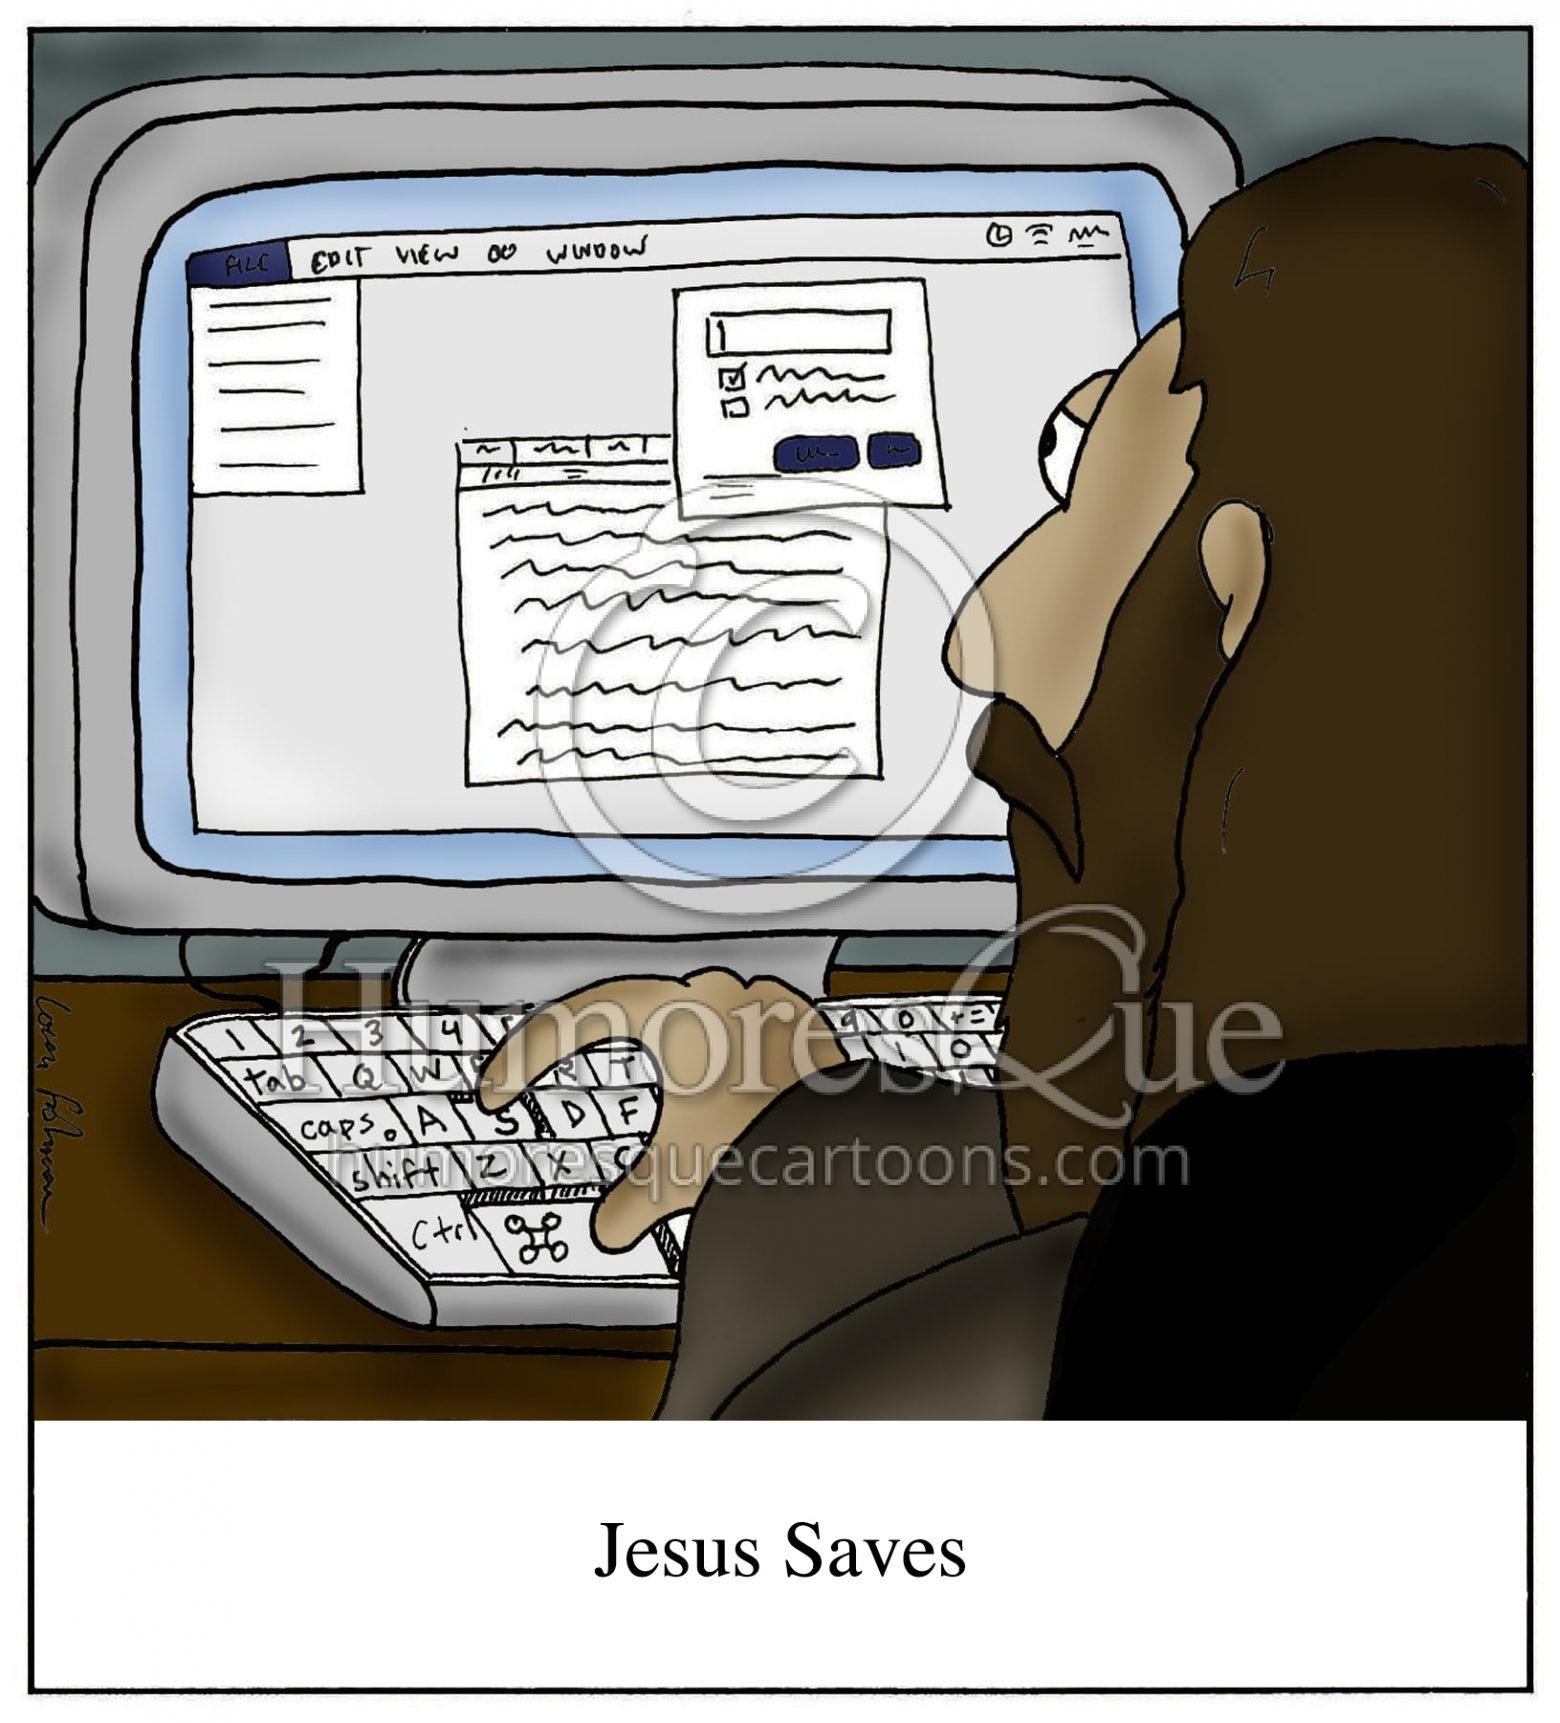 Jesus saves command s computer cartoon